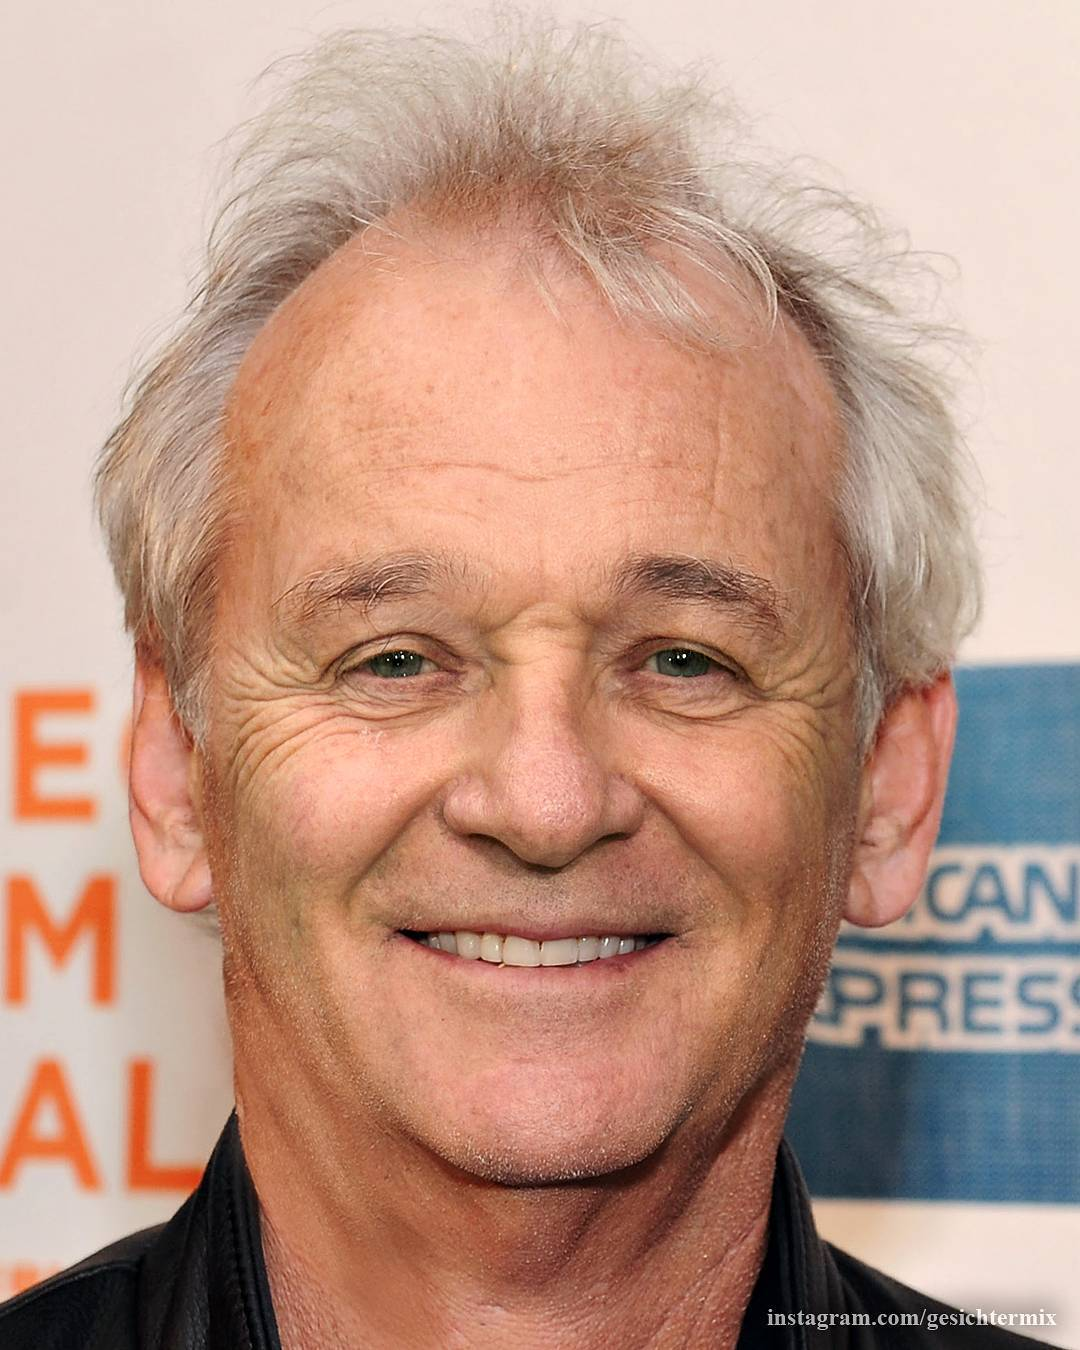 Photoshop Guru Fuses Celebrity Faces Together - Anthony Hopkins and Bill Murray